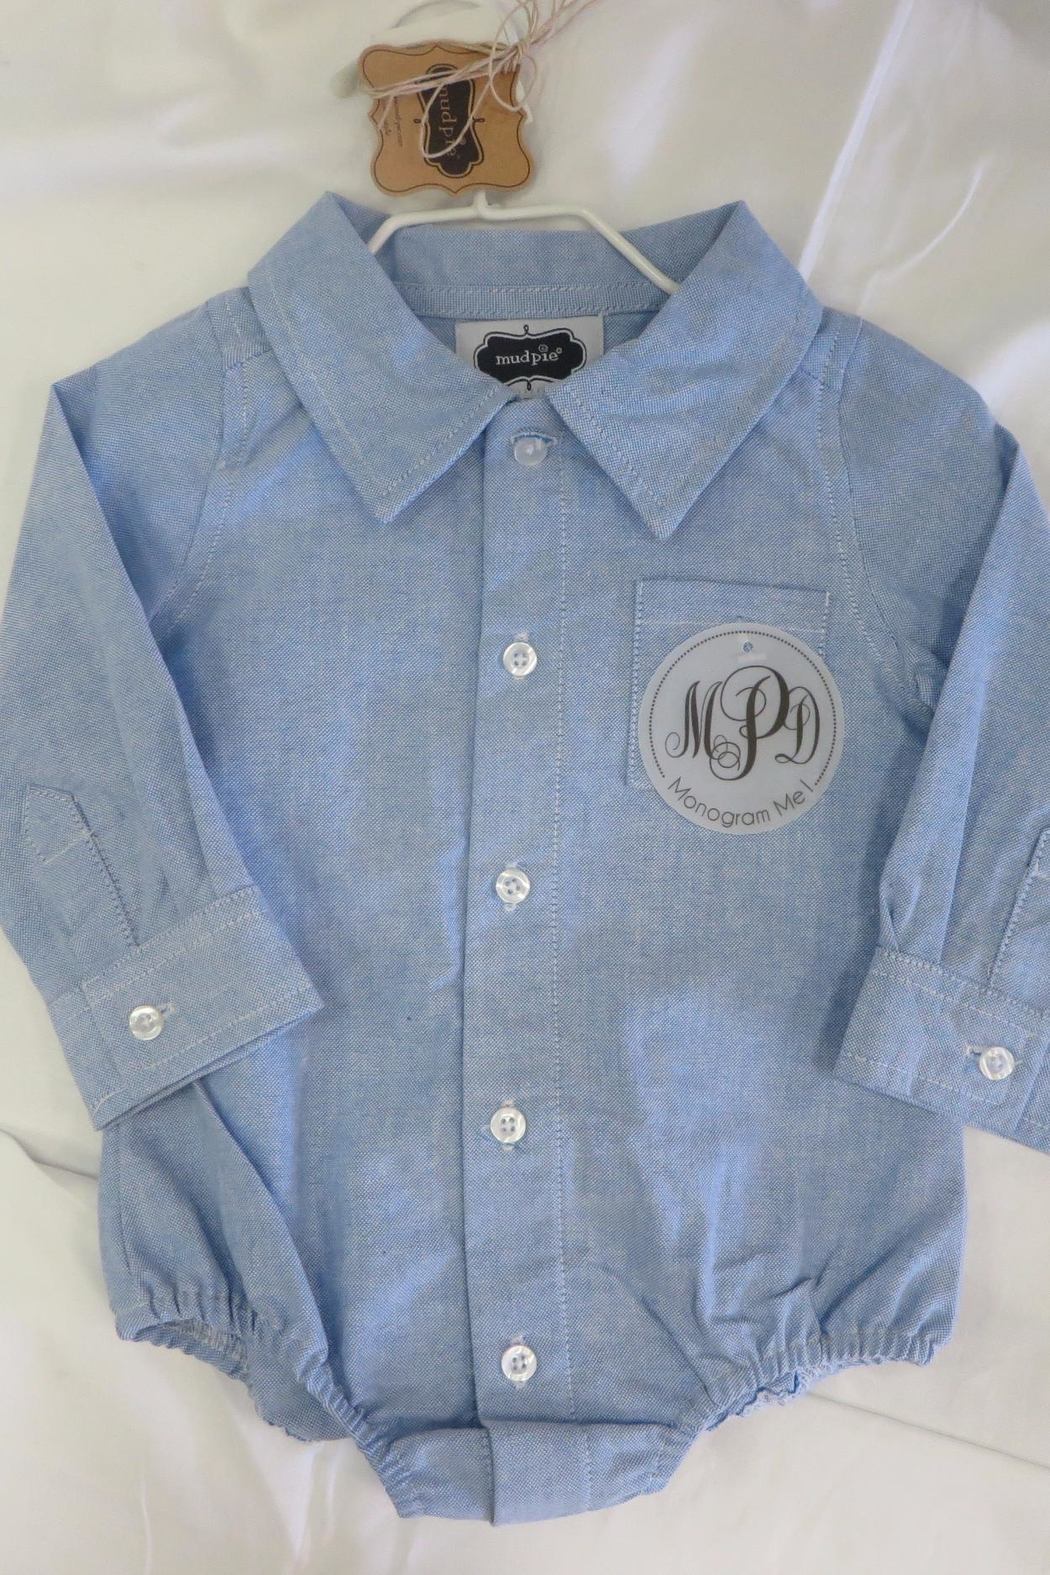 Mud Pie Monogrammed Oxford One Piece From Florida By Leisa